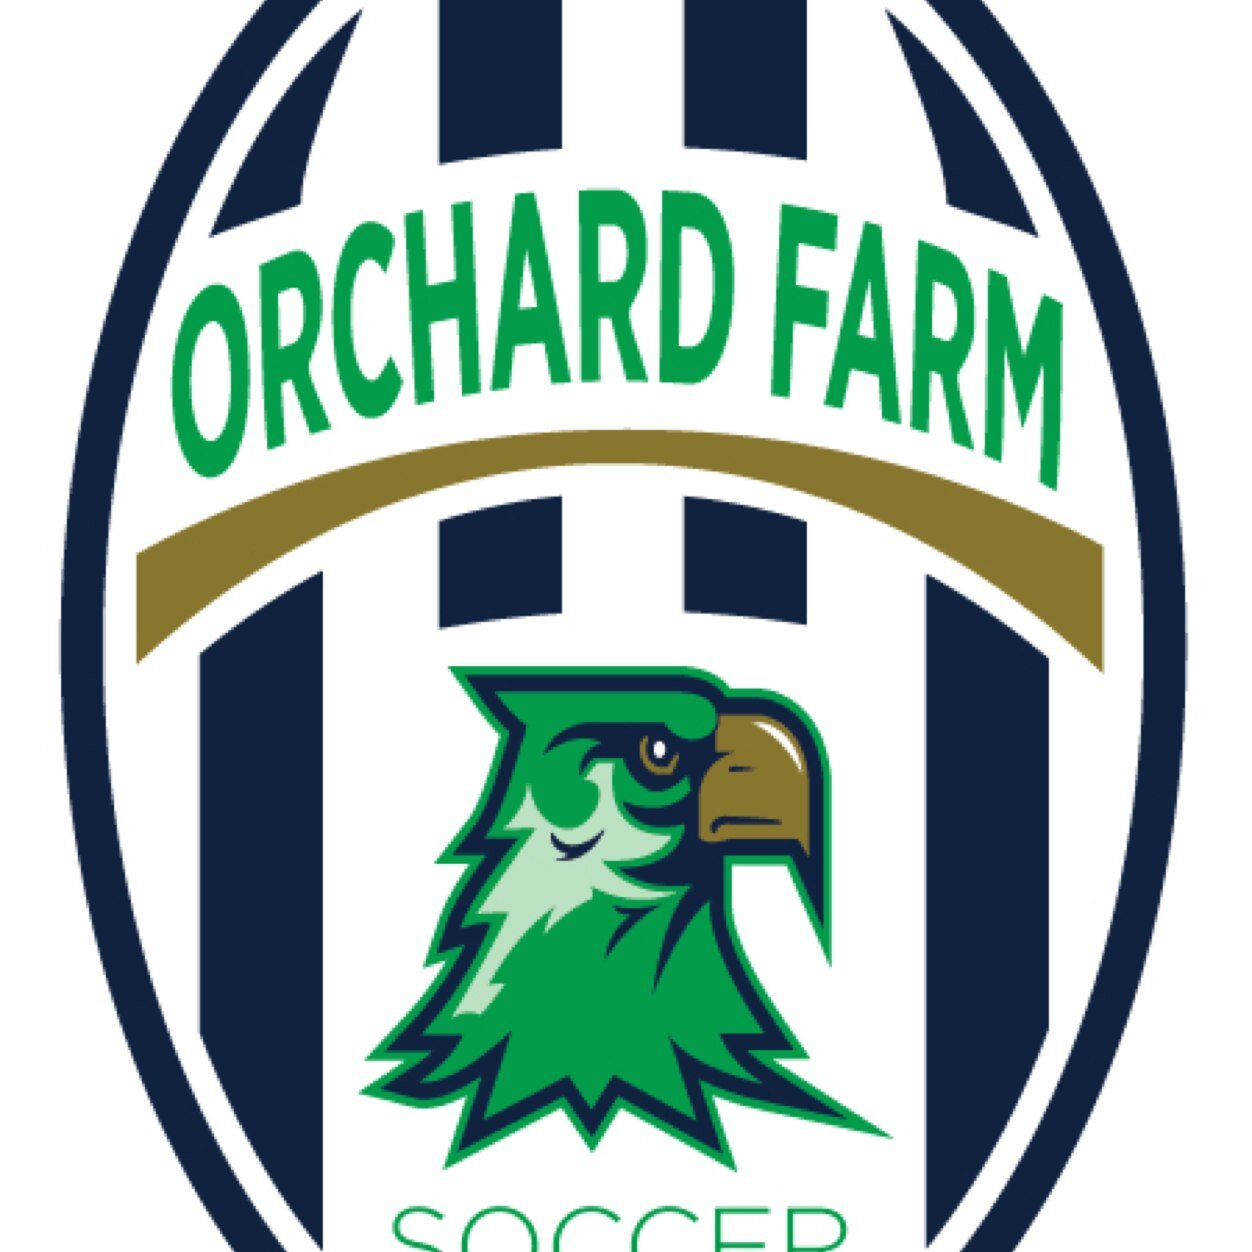 Orchard Farm Soccer Ofeaglessoccer Twitter